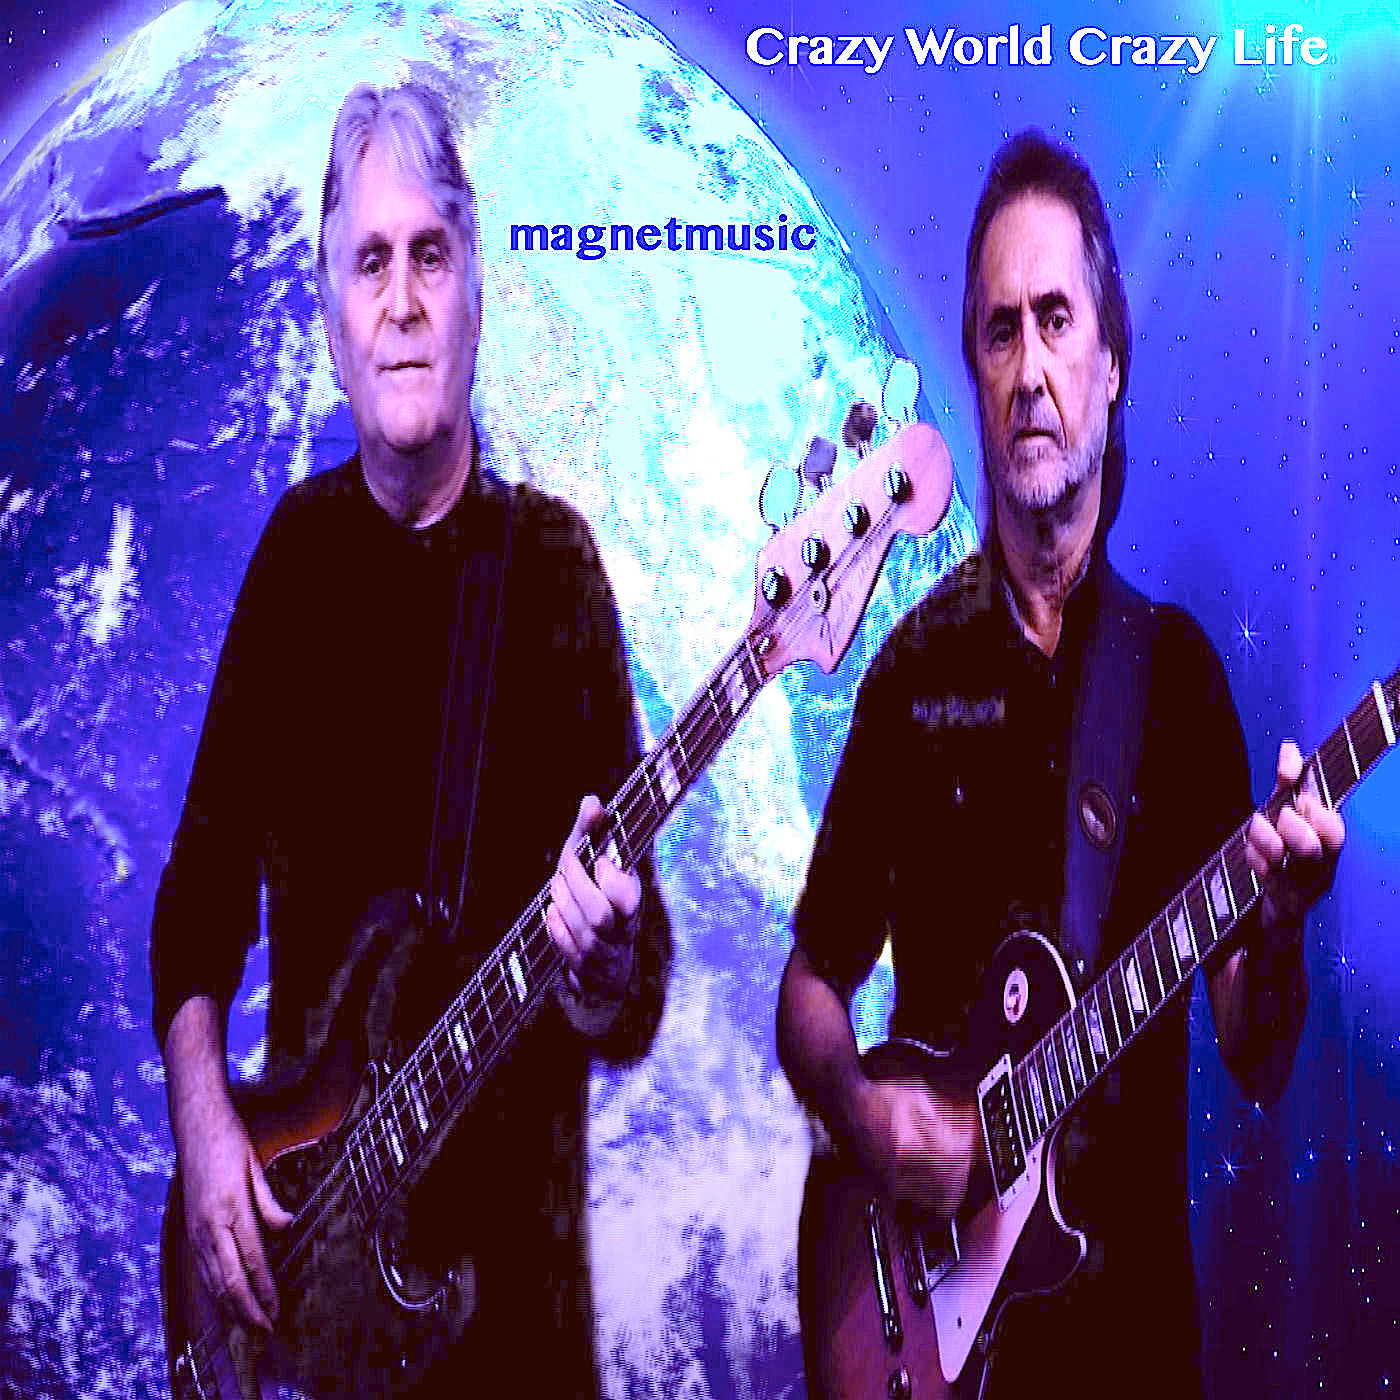 Crazy_World_Crazy_Life_